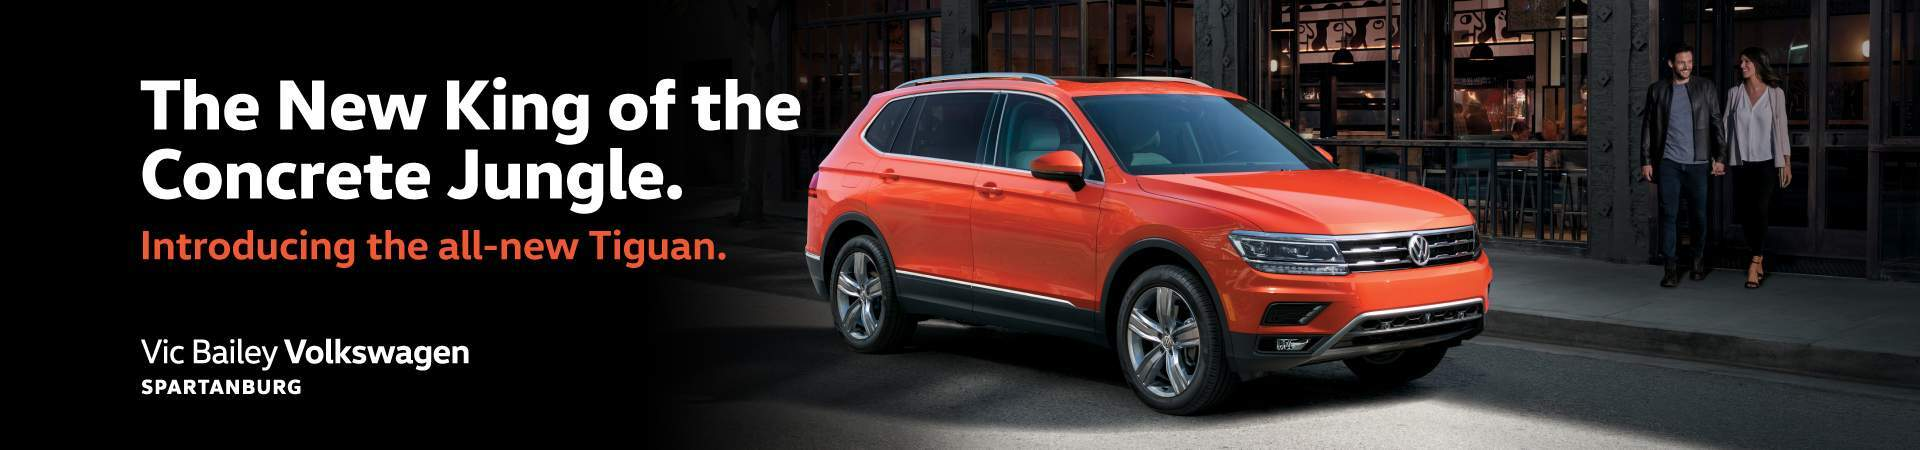 2018 Tiguan Launch